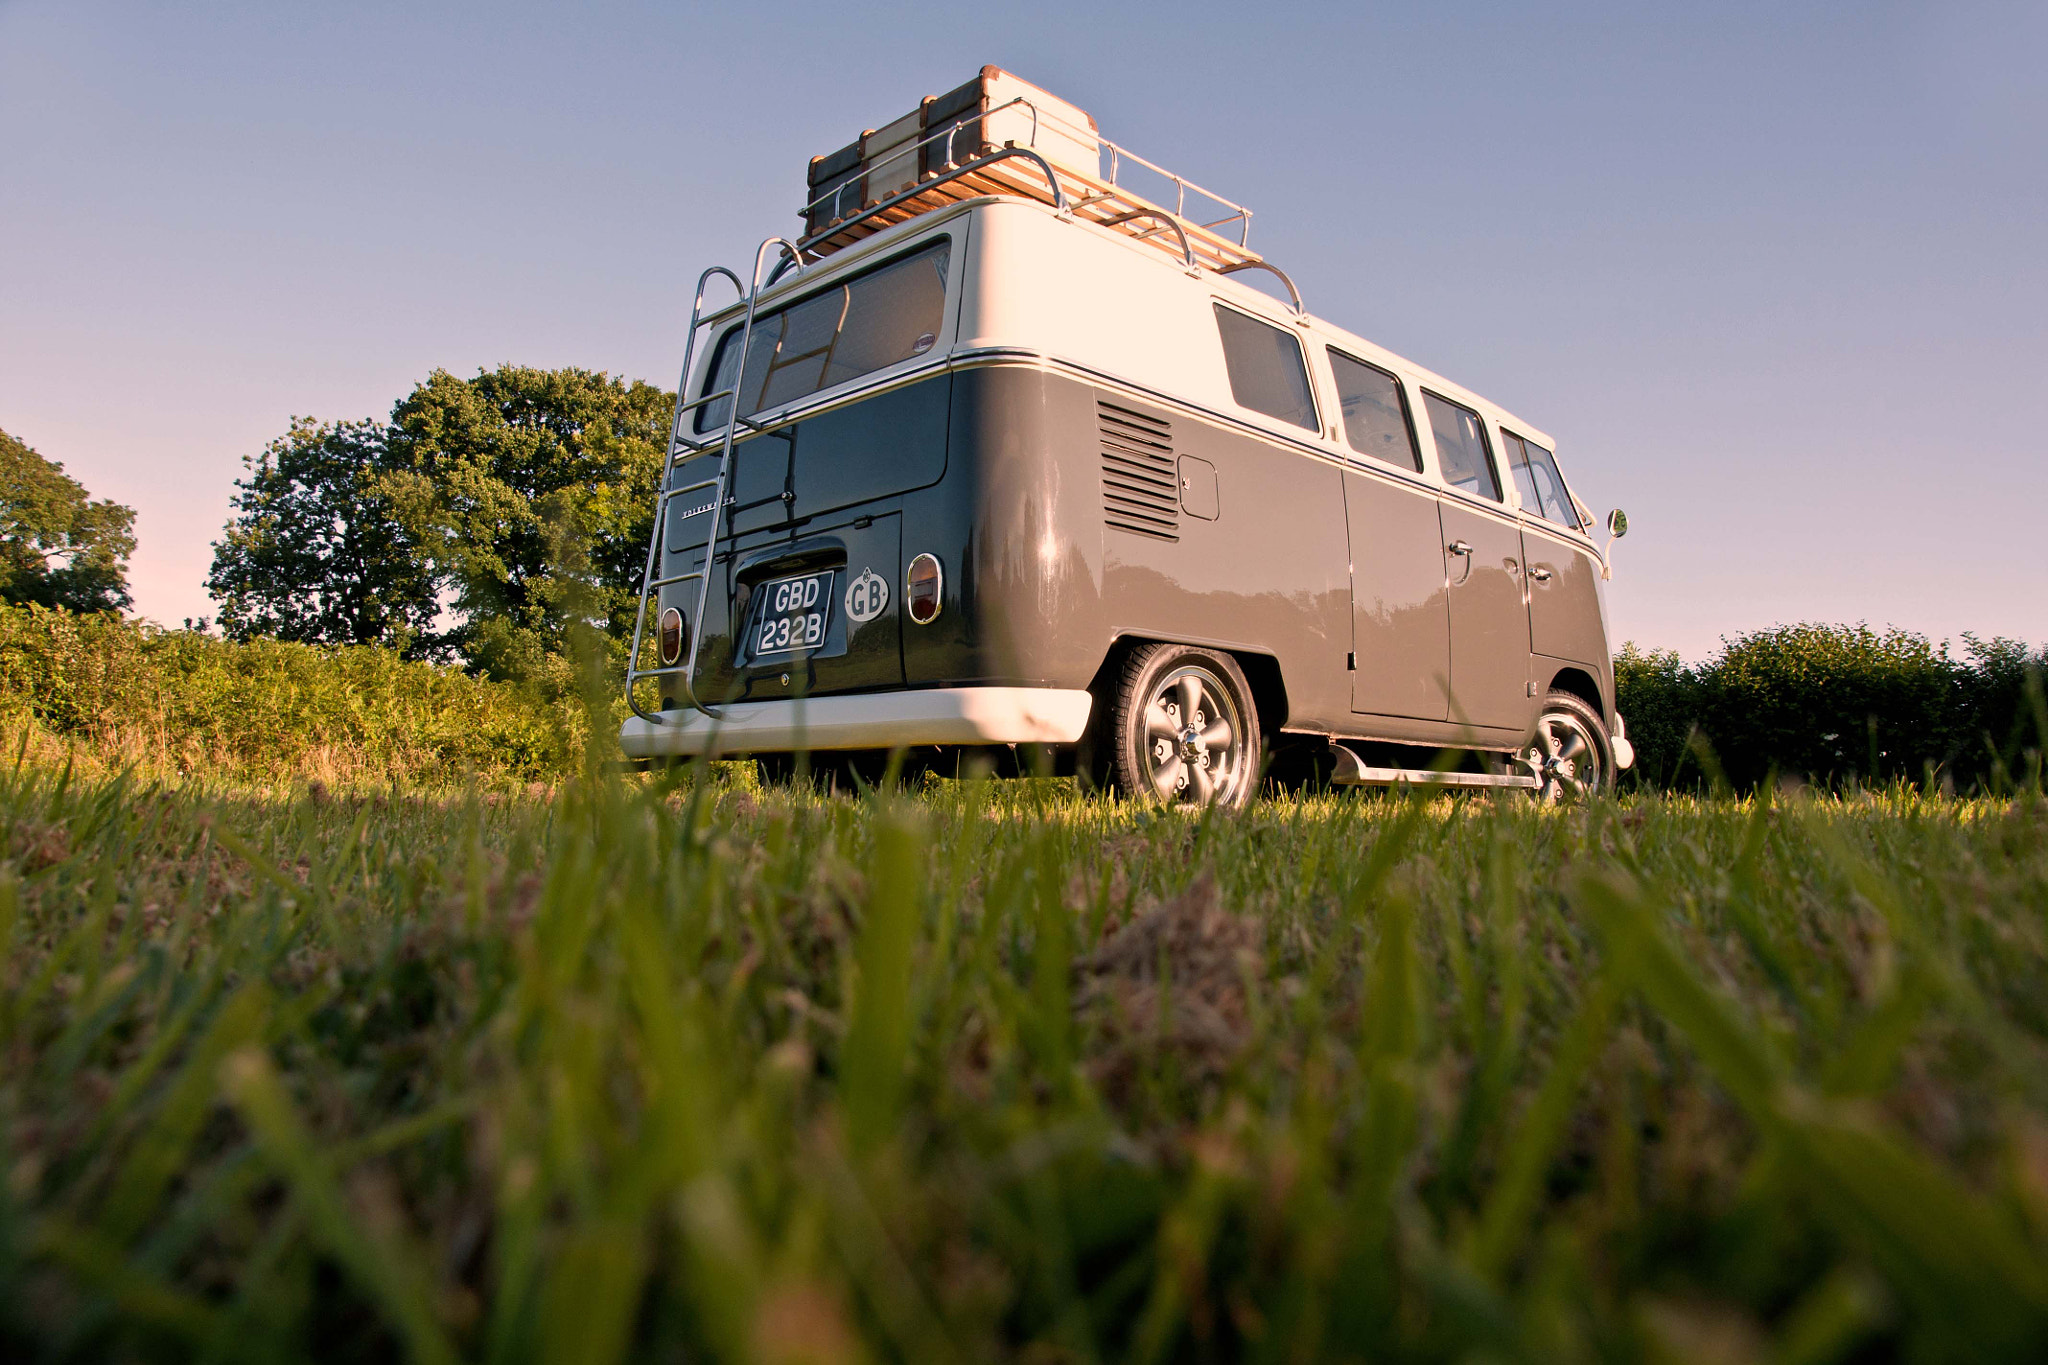 Photograph VW Camper van by Kirsty Burge on 500px